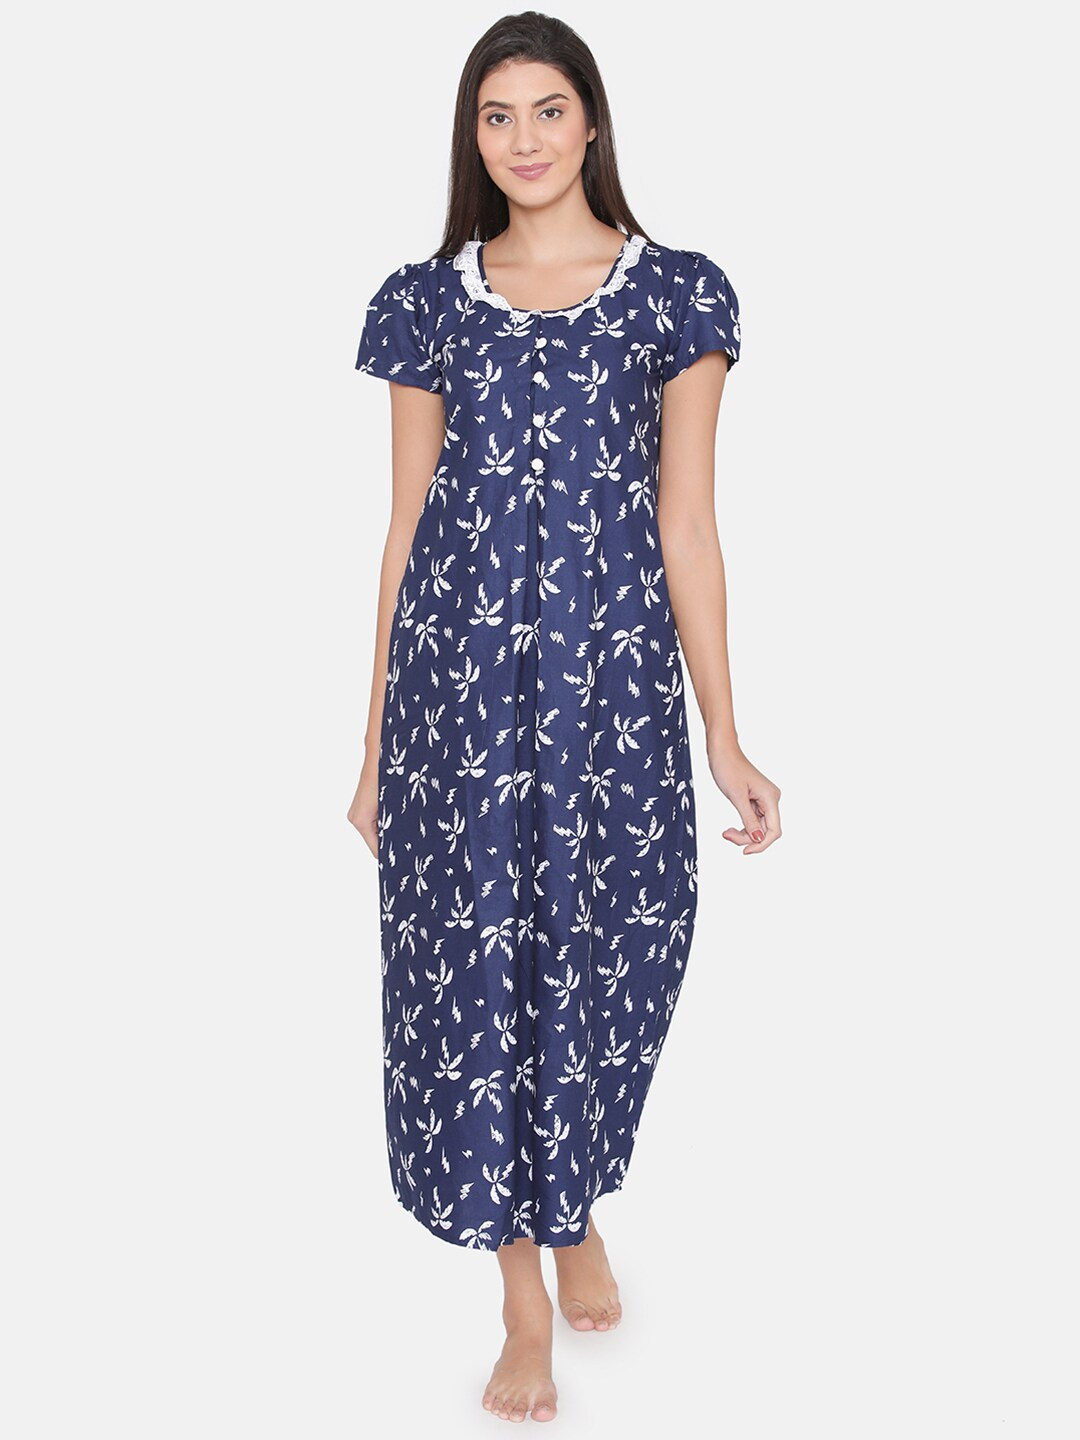 Cotton Nightdresses - Buy Cotton Nightdresses Online in India  ac598643c8c1